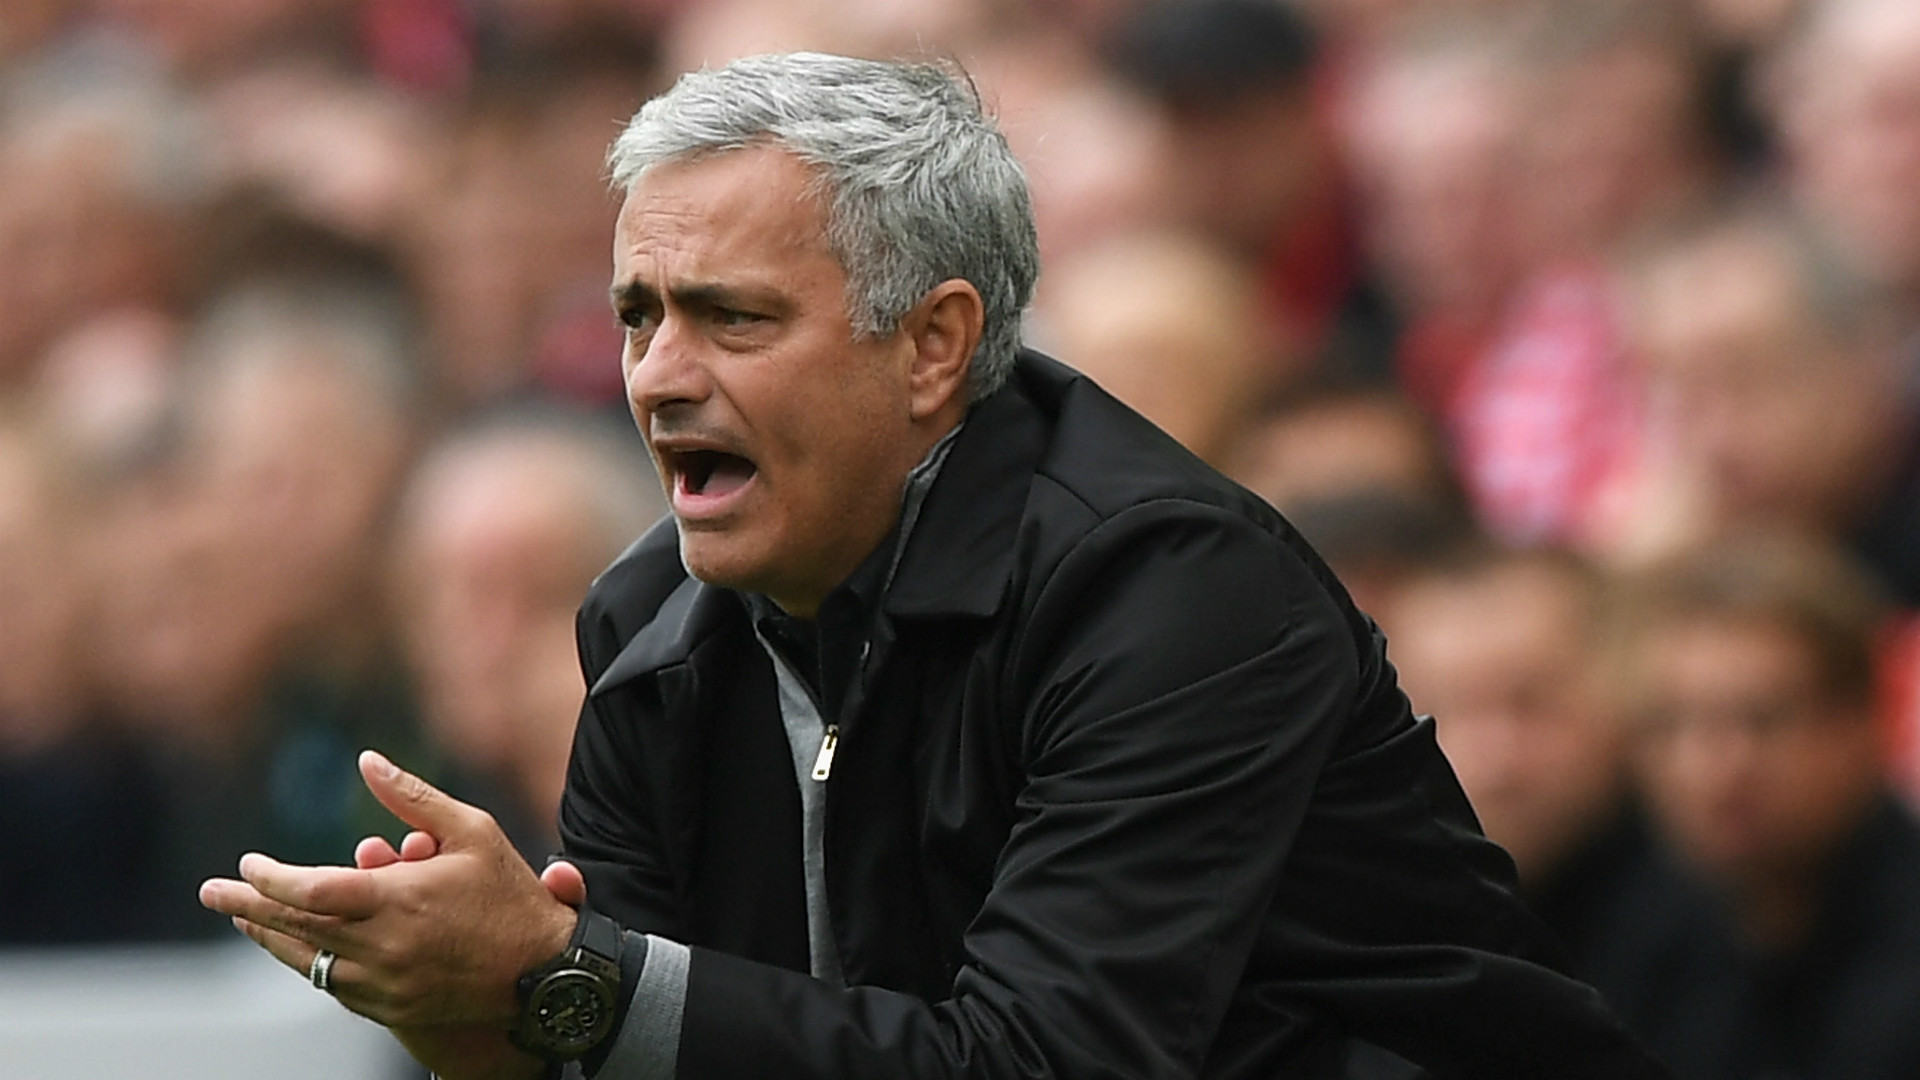 Manchester United whip Stoke at Old Trafford amid Sanchez talk